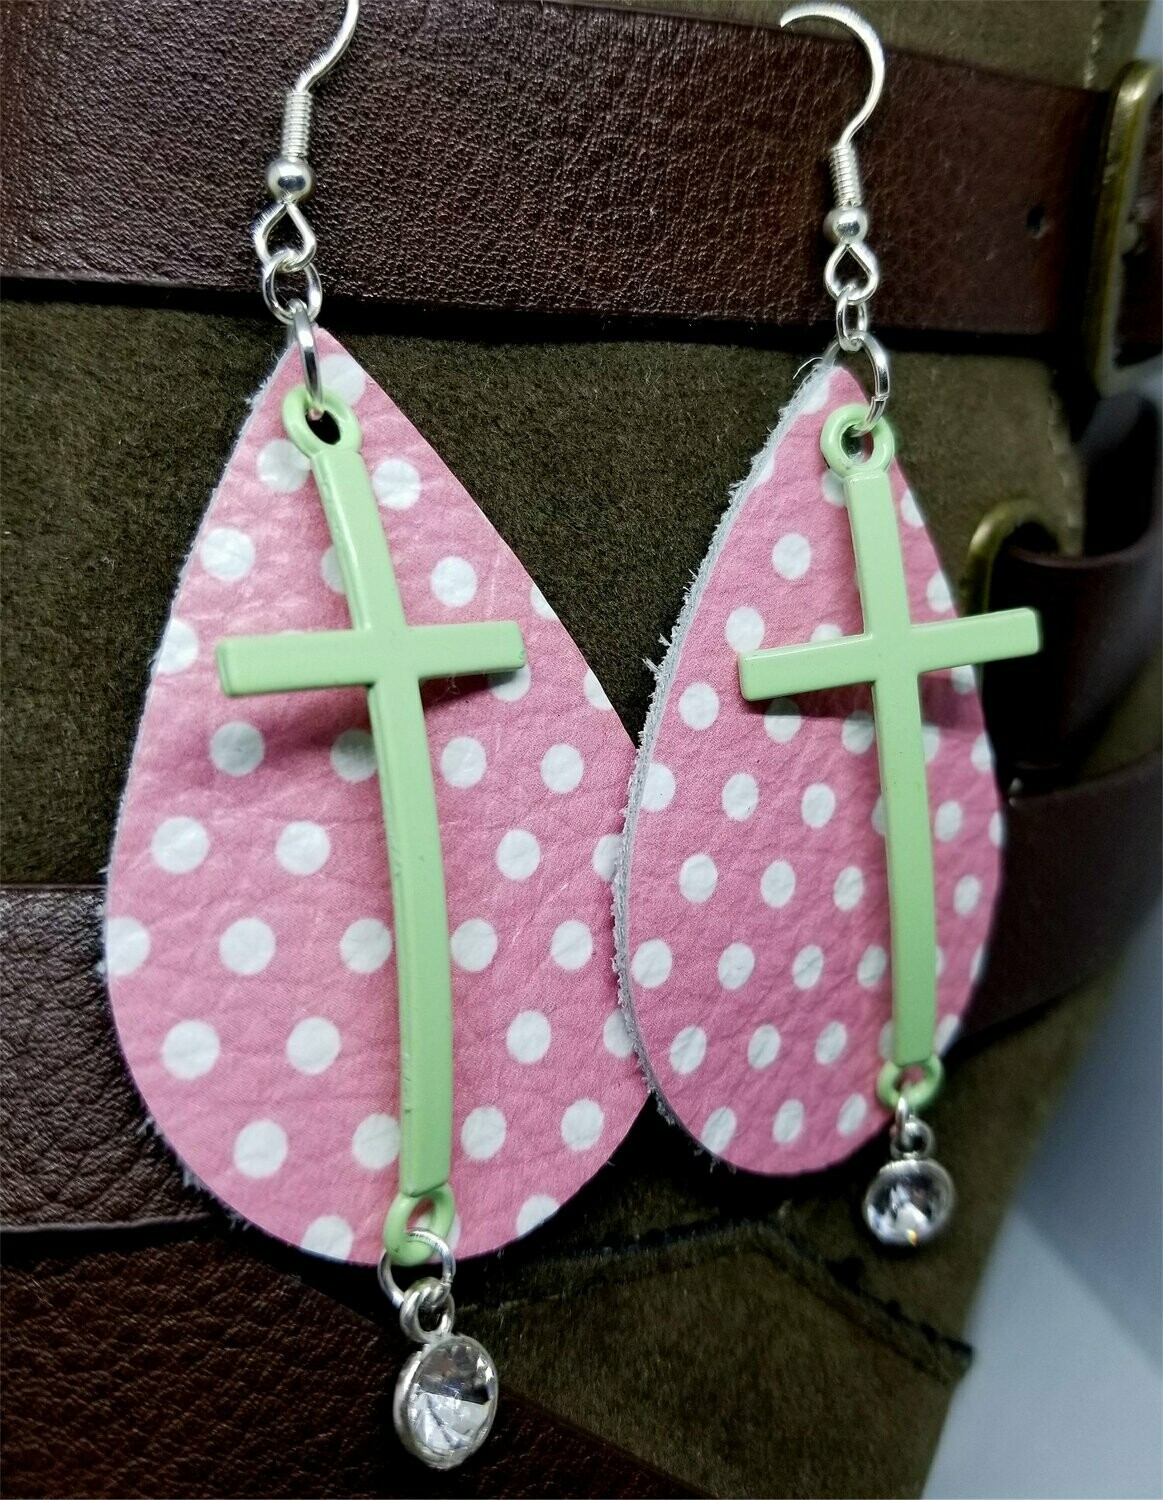 Pink with White Polka Dots Real Leather Earrings with a Pastel Green Cross and Crystal Charm Dangles